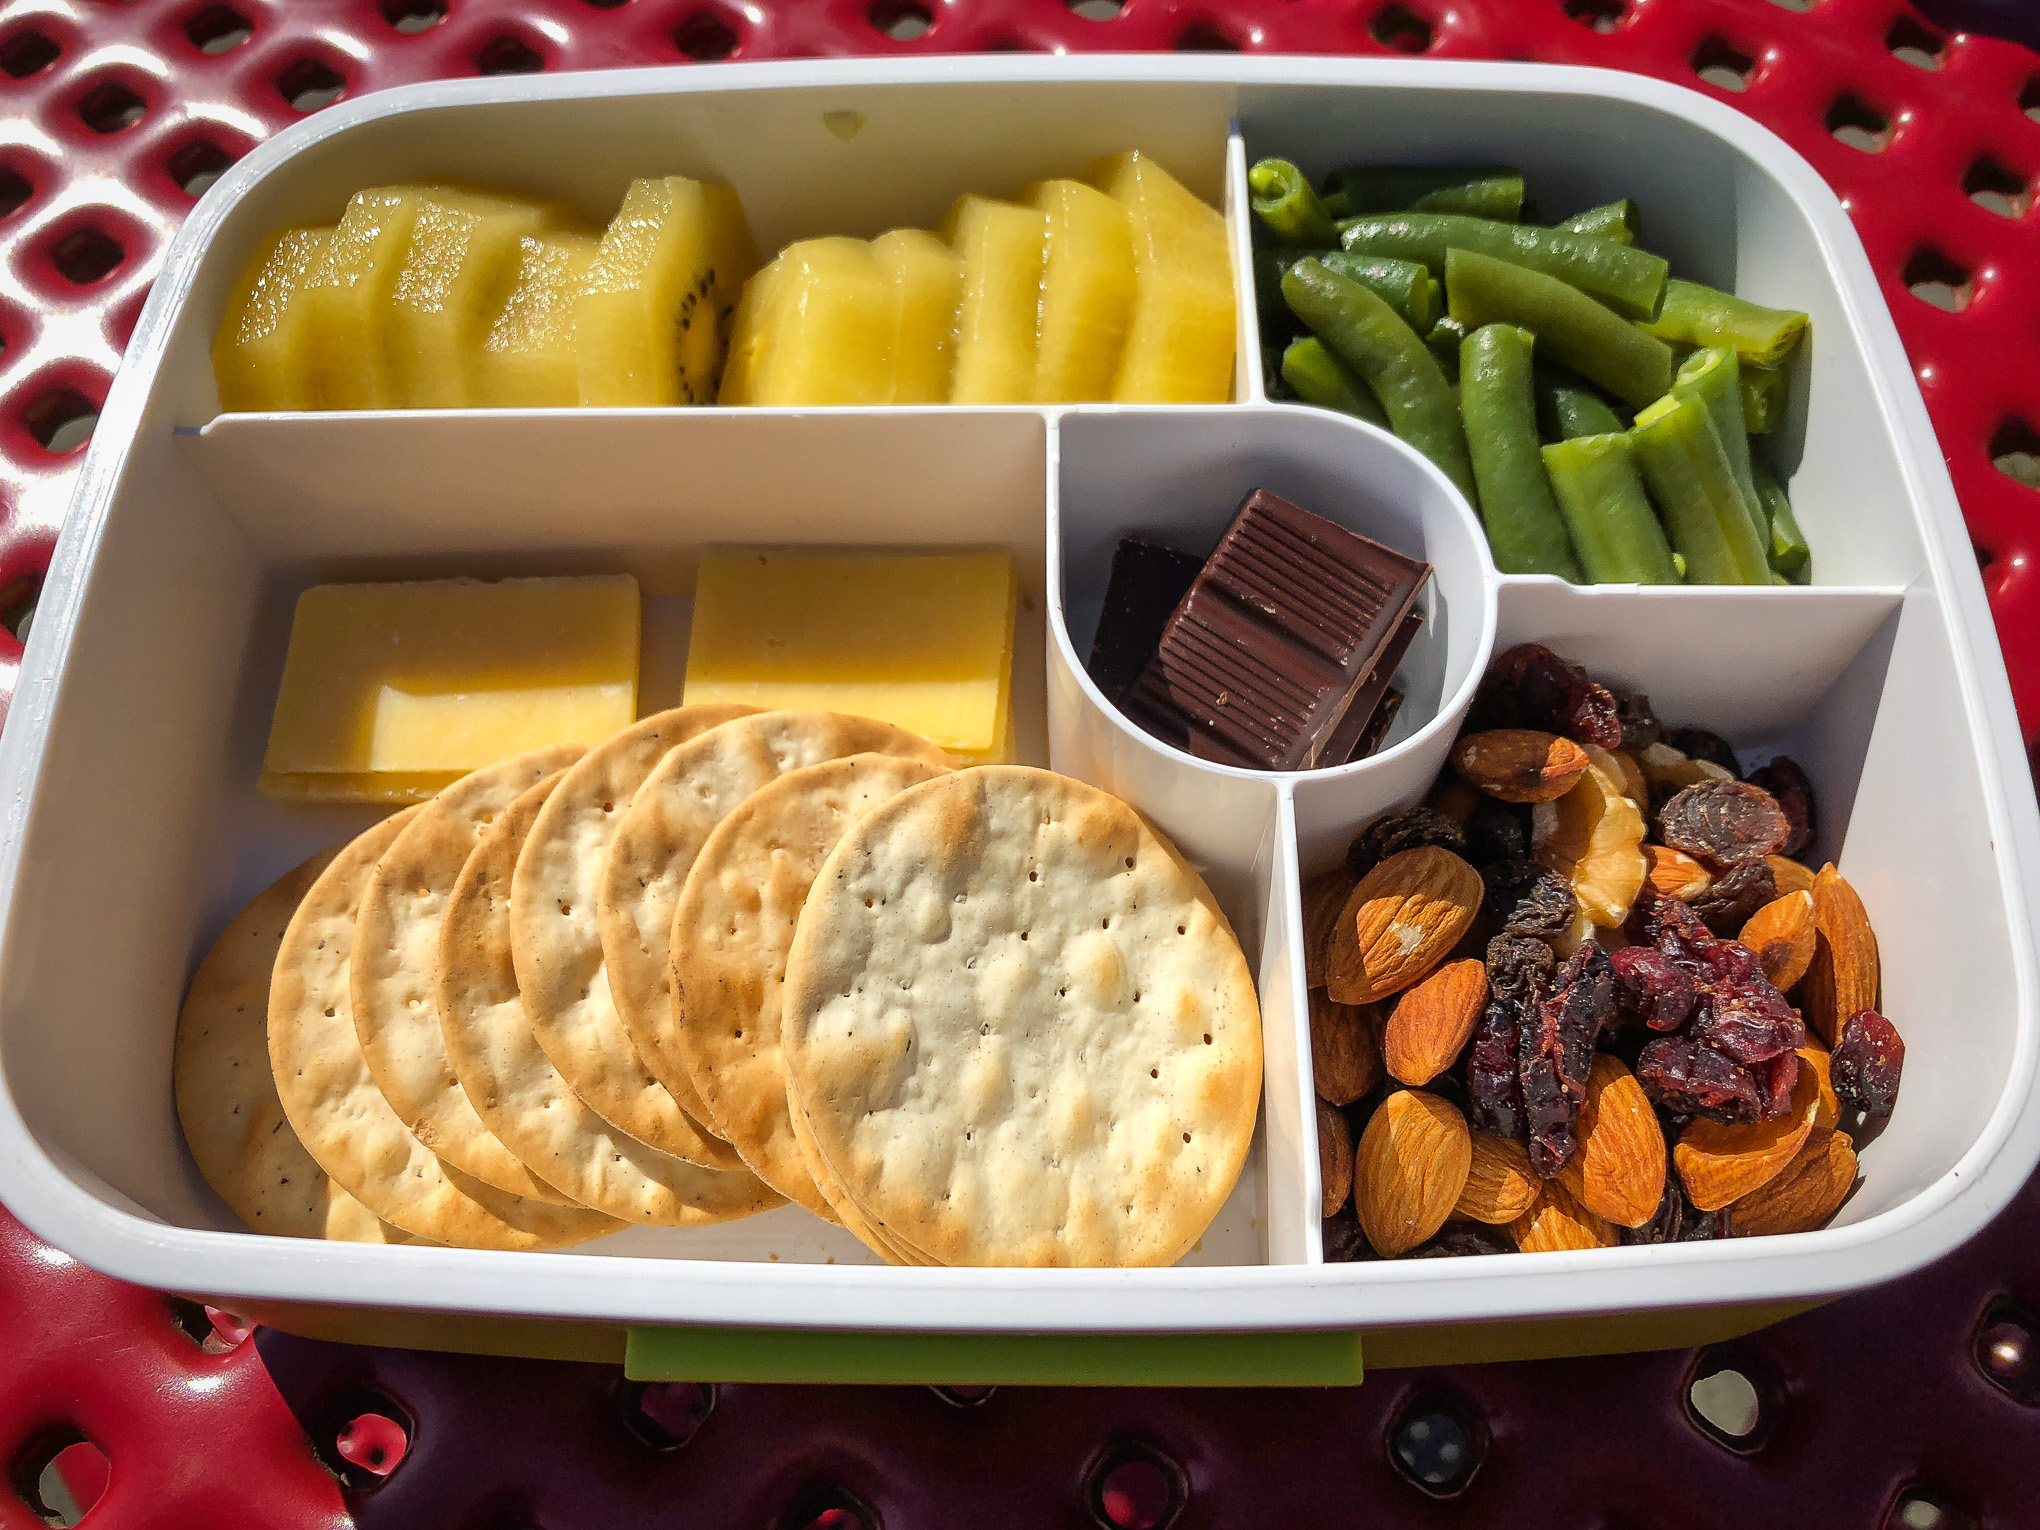 Bento box filled with fruit and vegetables